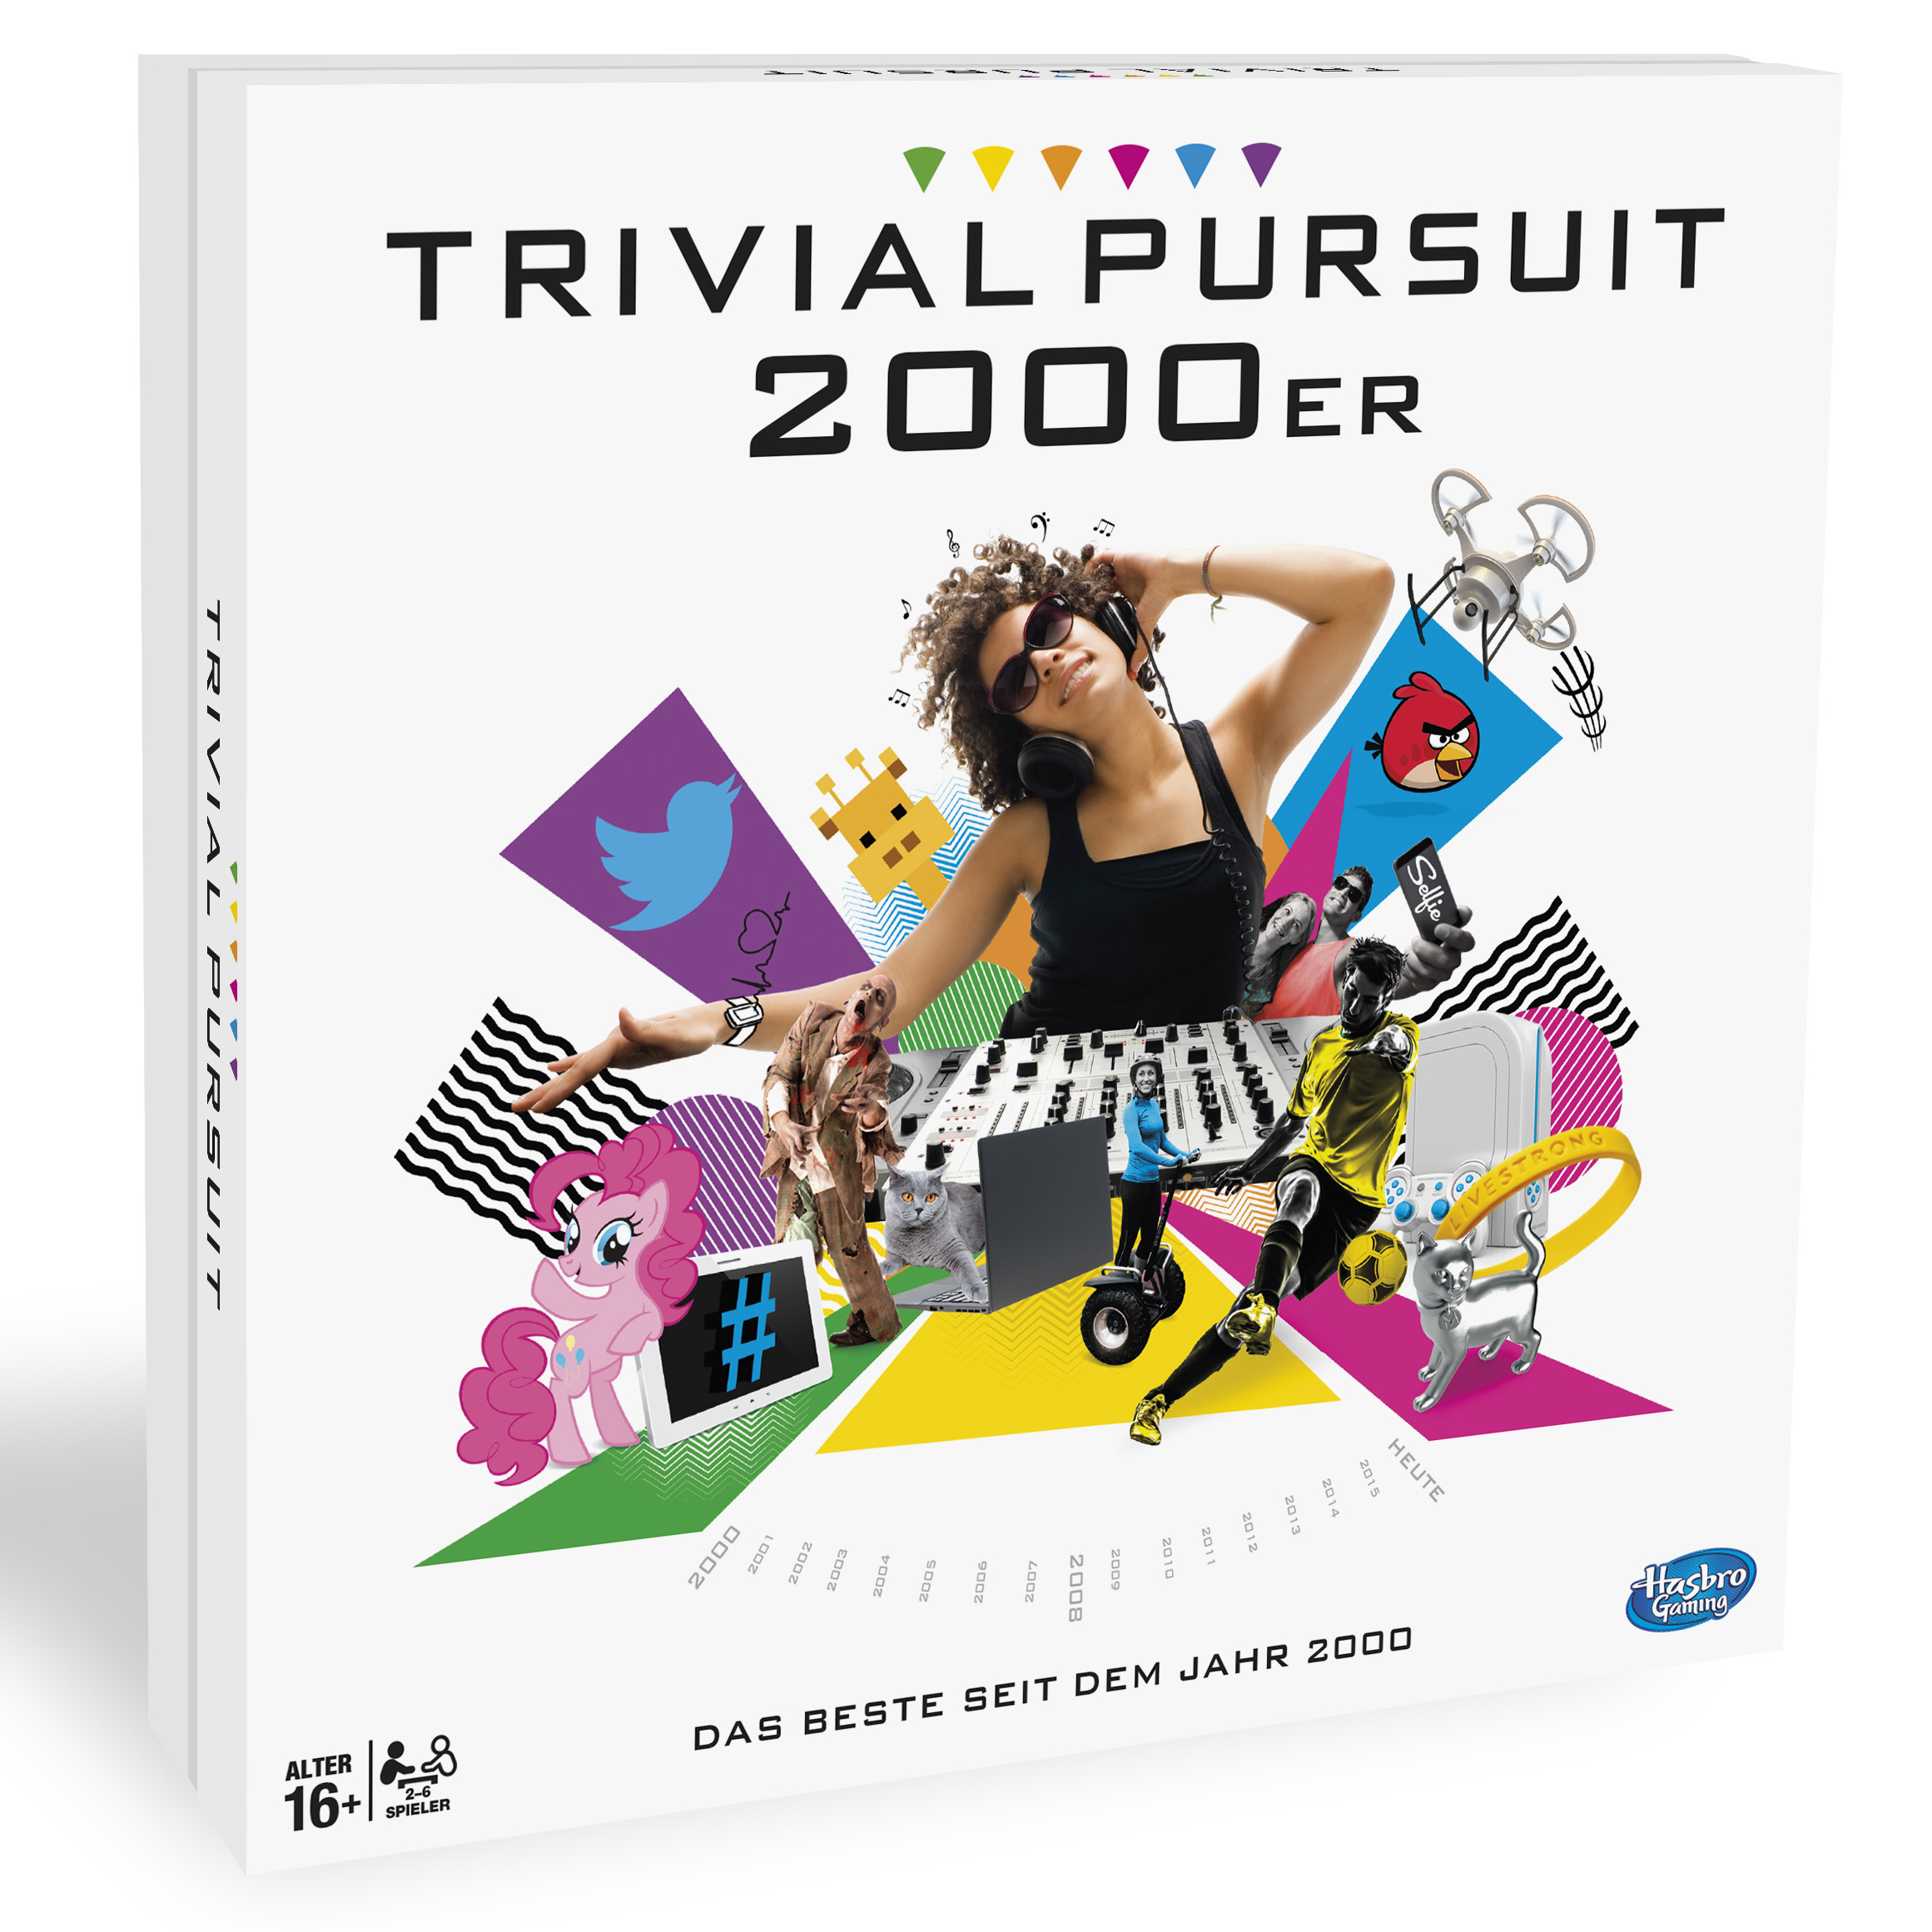 B7388100 Trivial Pursuit 2000er Pack links